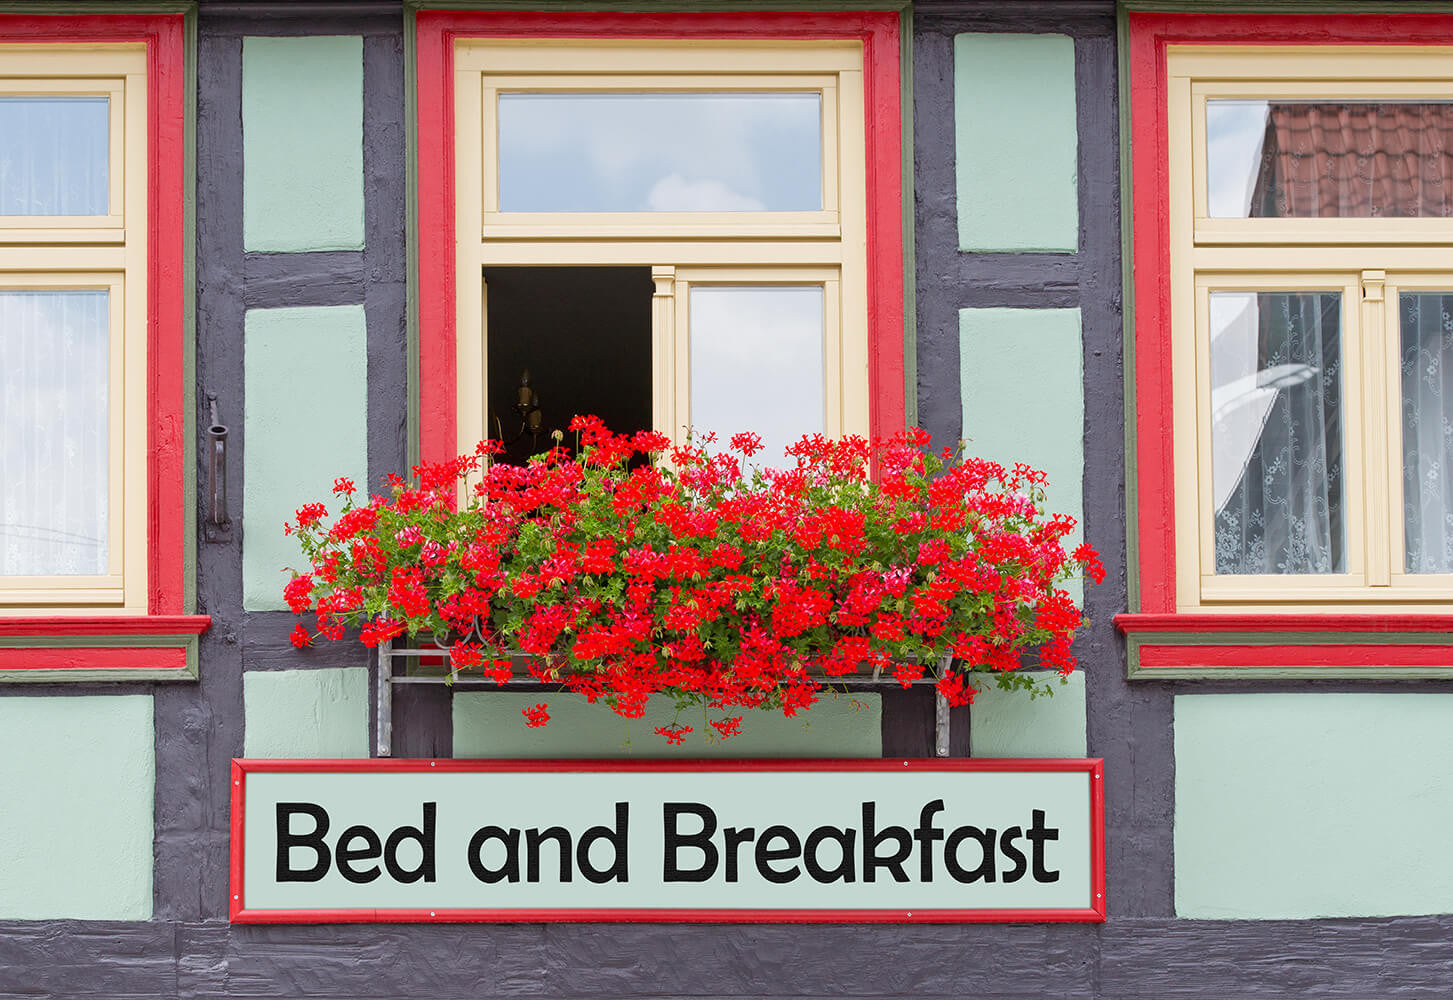 Bed and Breakfast with flowers